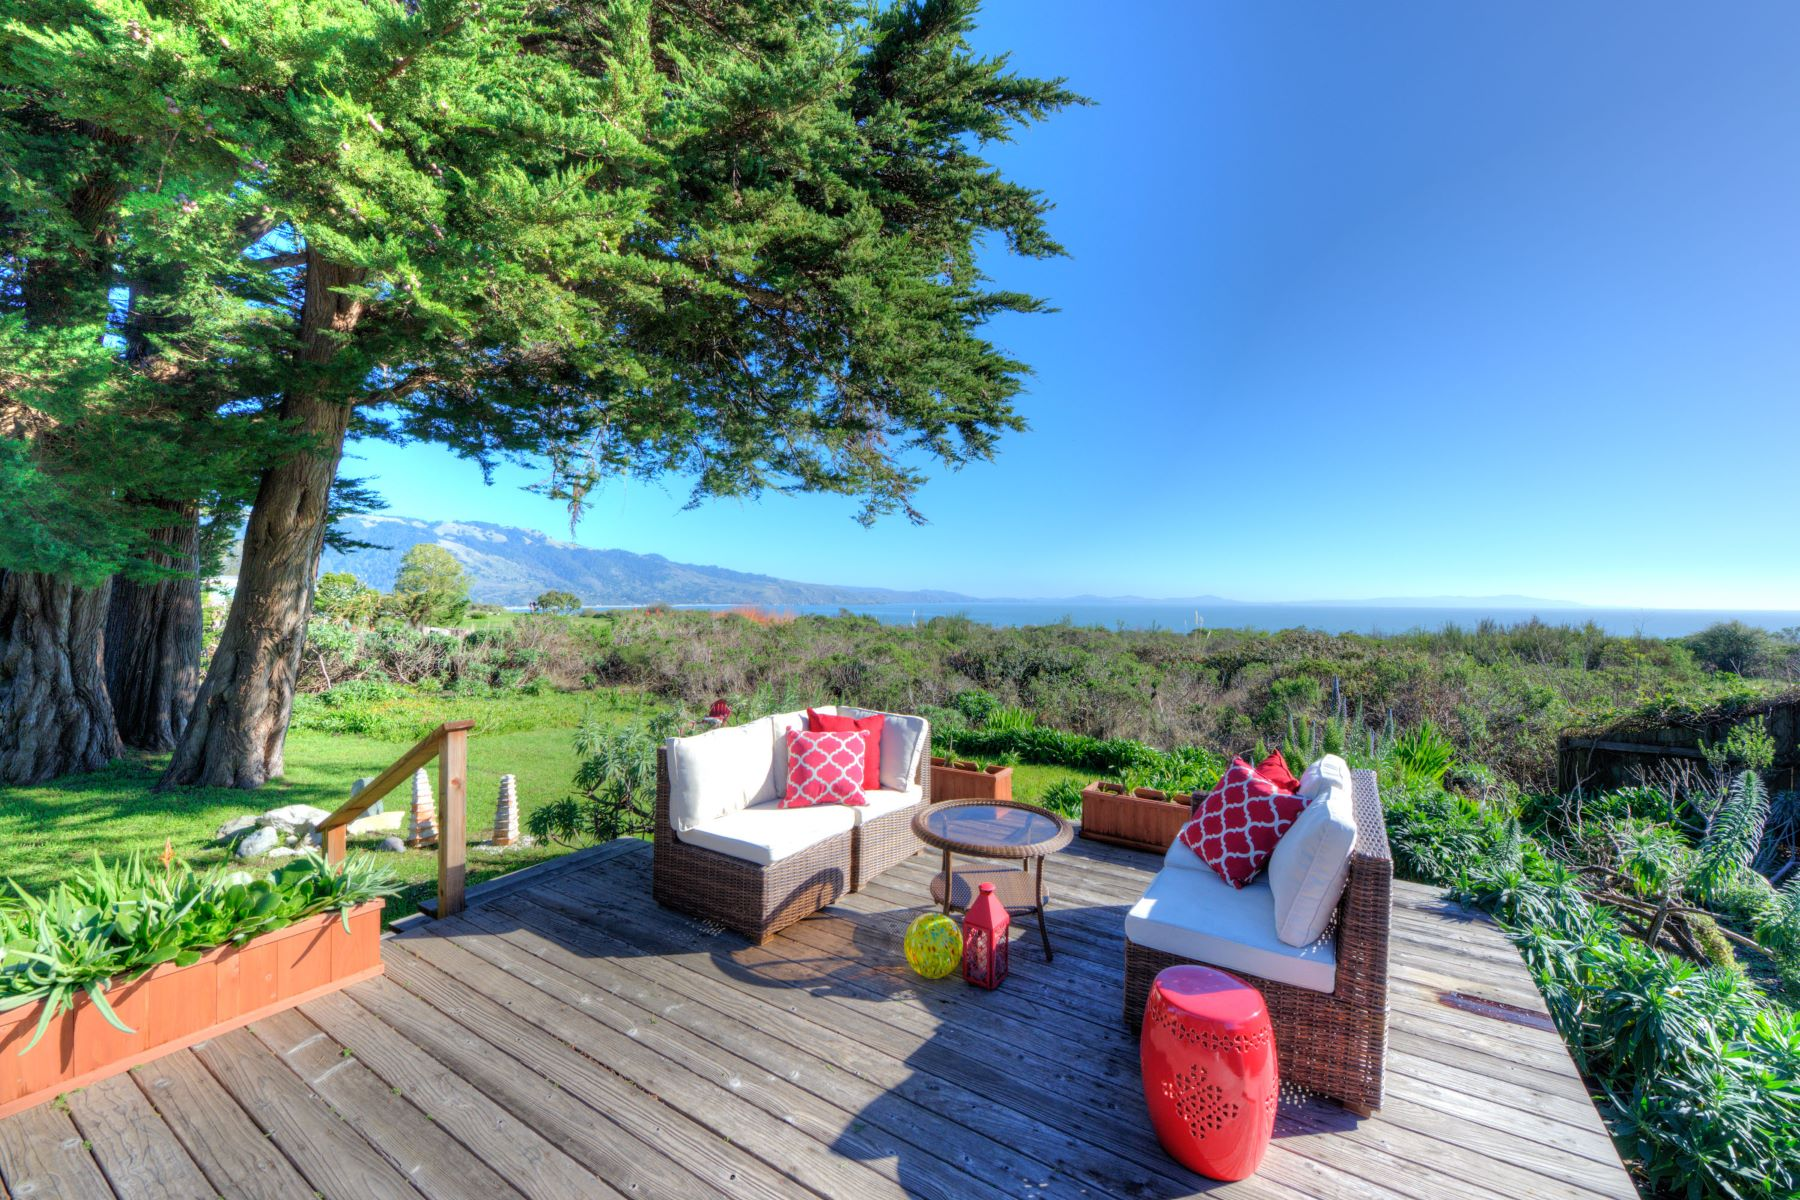 Casa Unifamiliar por un Venta en It's All About the View 125 Dogwood Road Bolinas, California 94924 Estados Unidos